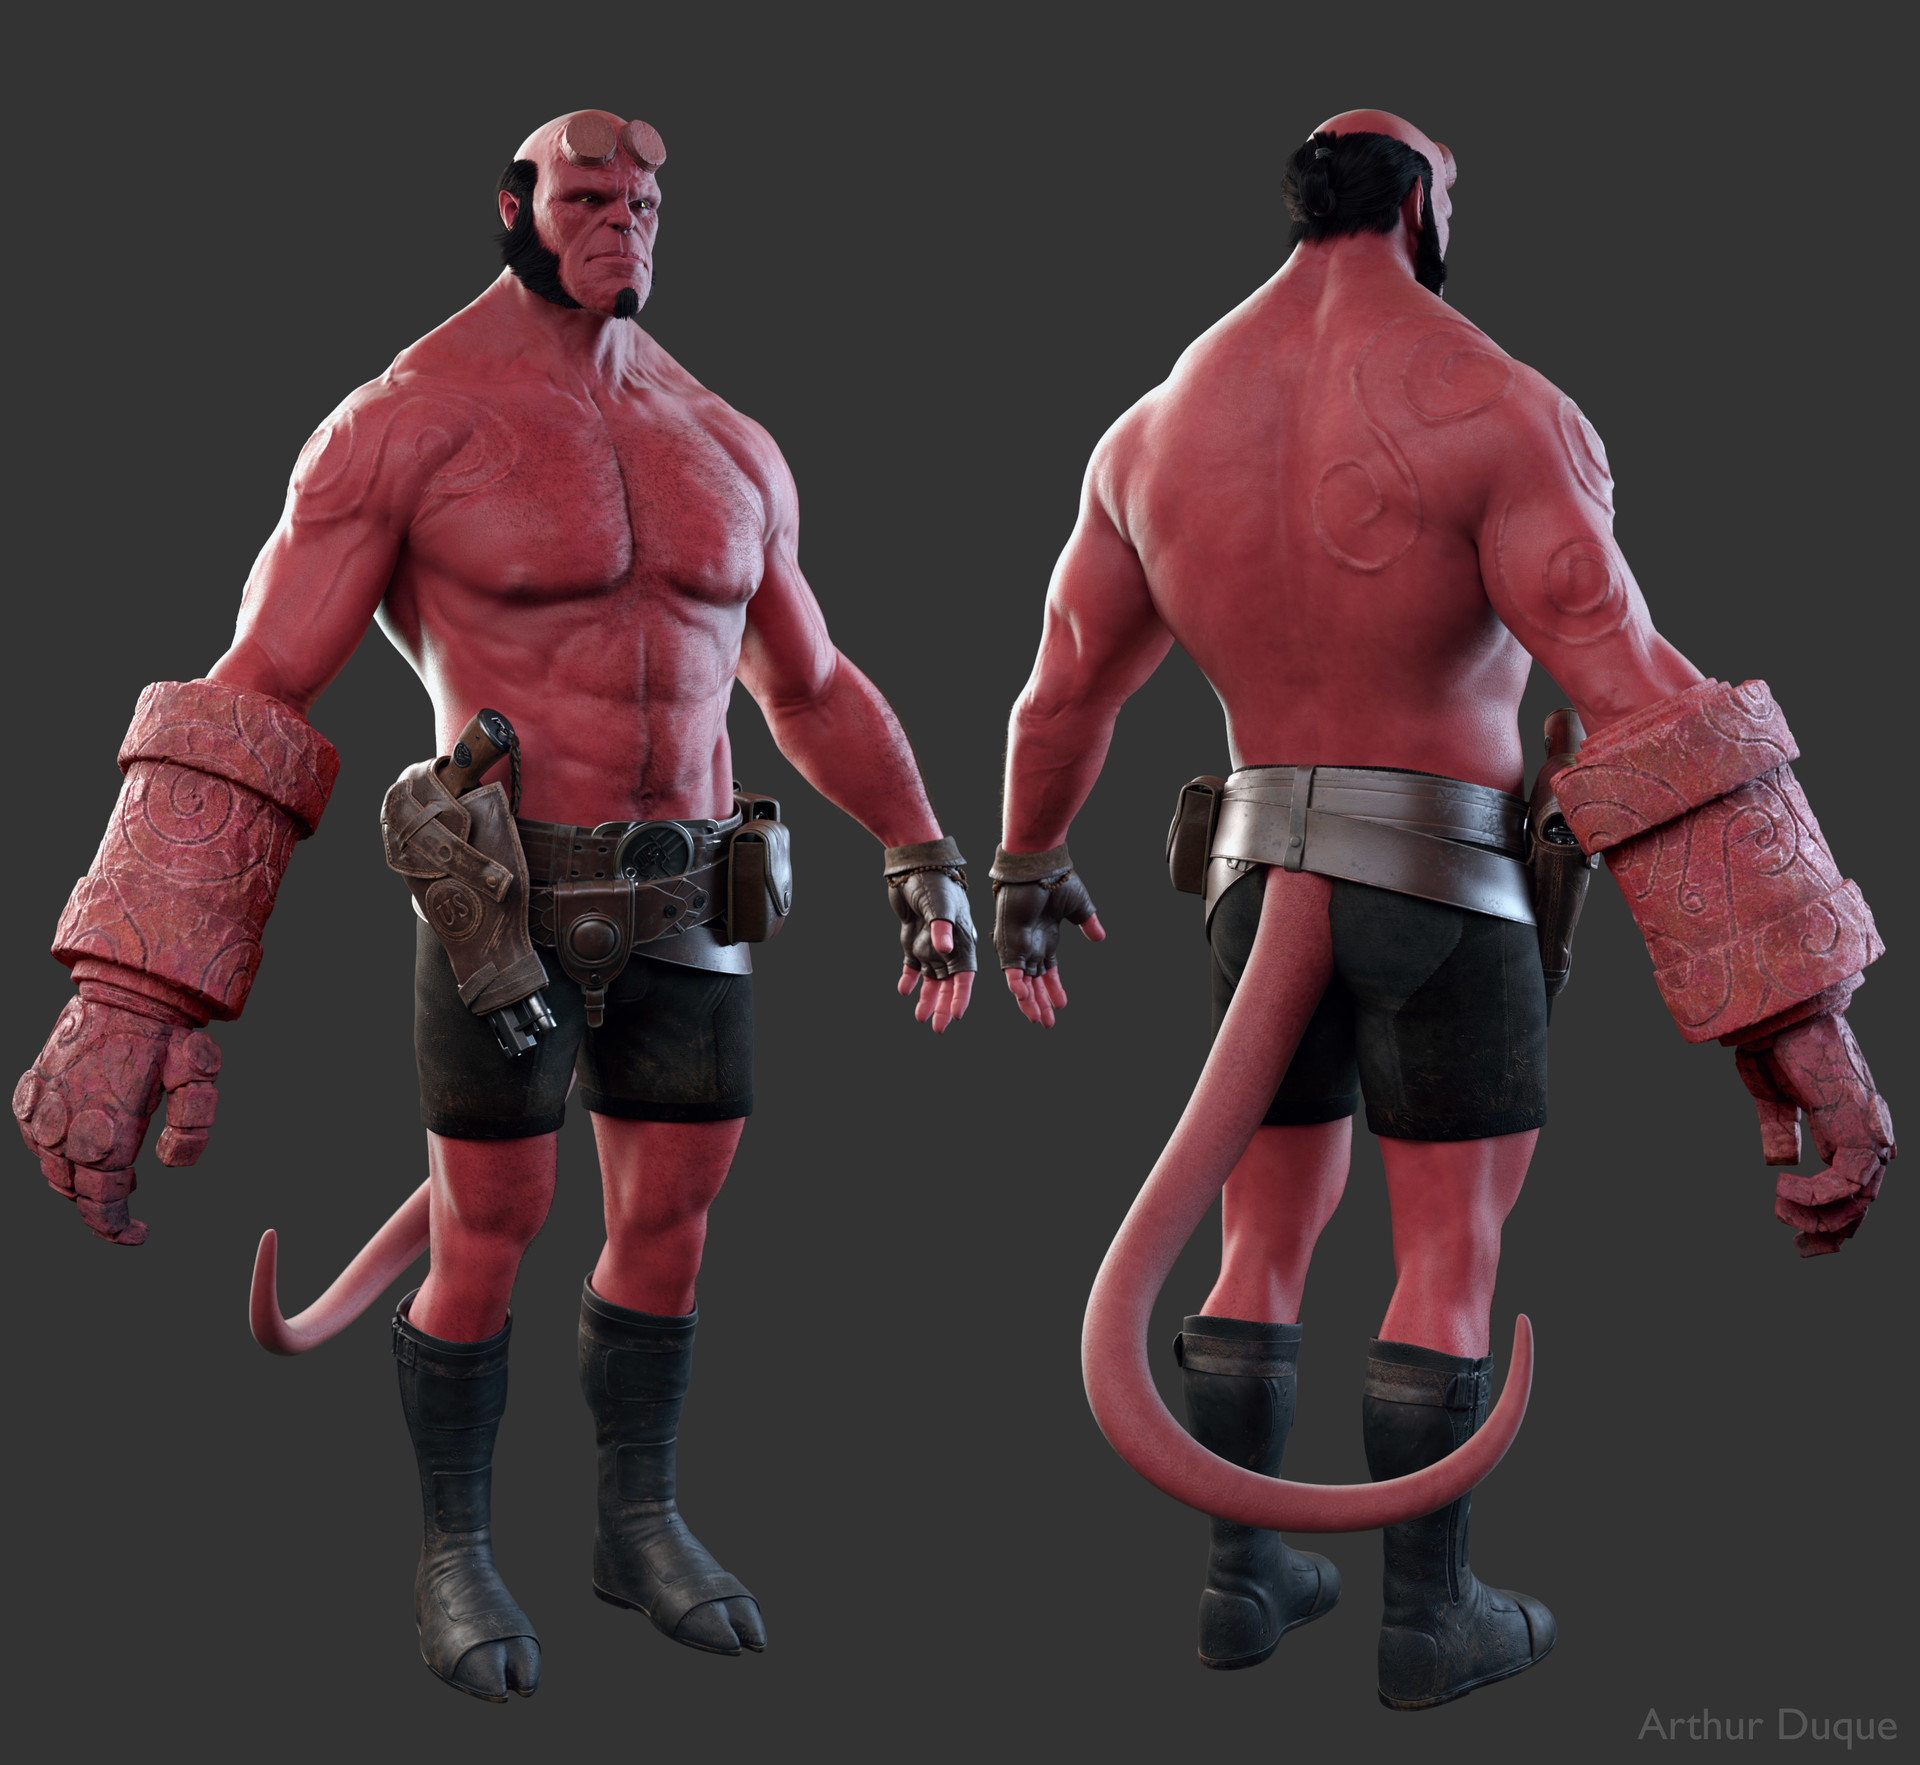 Arthur duque hellboy body 02